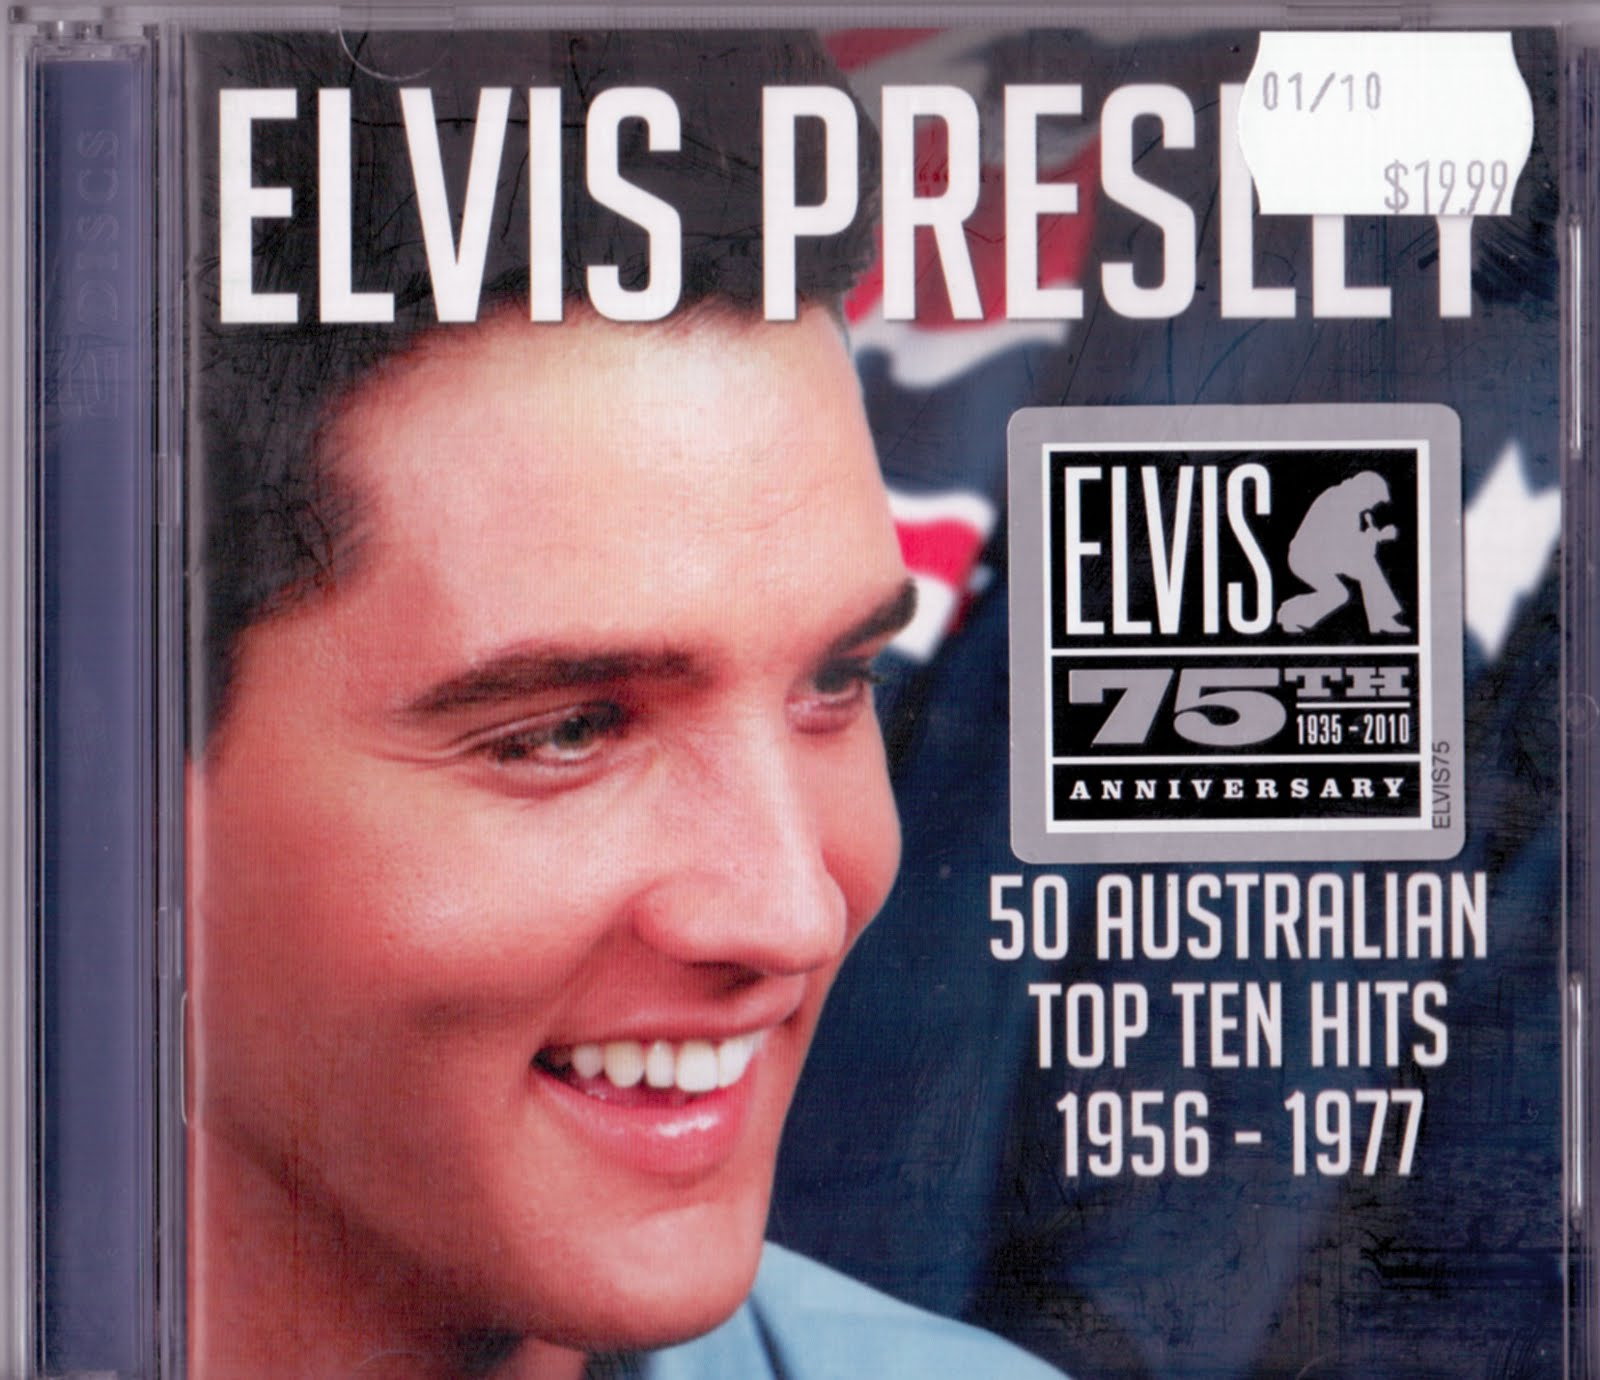 Elvis Presley - The Top Ten Hits (disc 2)